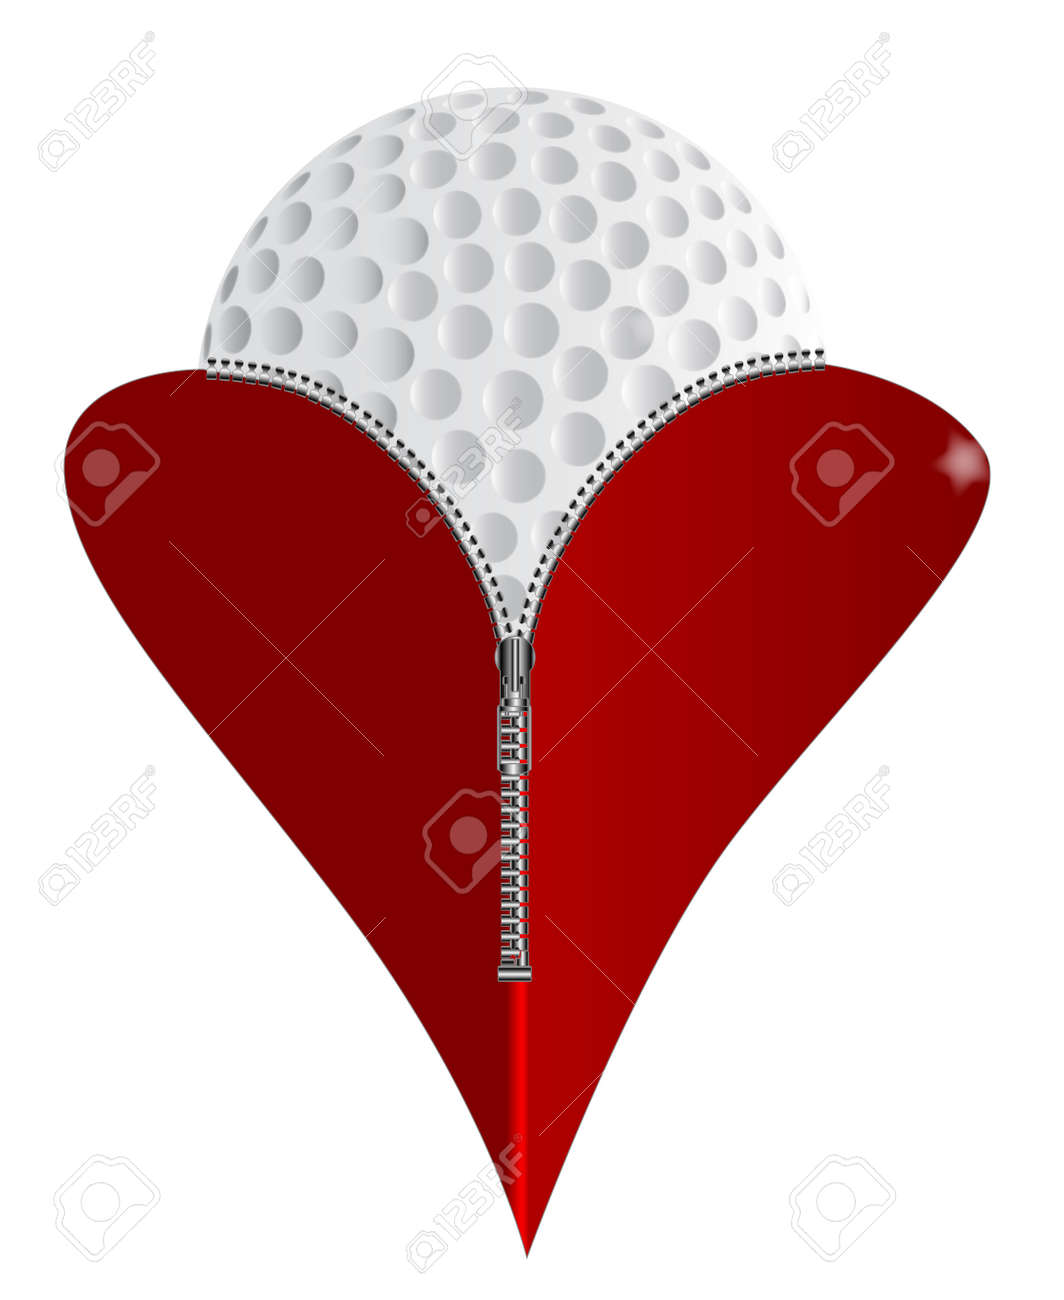 A red heart with a zipper showing a golf ball rising from within a red heart with a zipper showing a golf ball rising from within stock vector biocorpaavc Images